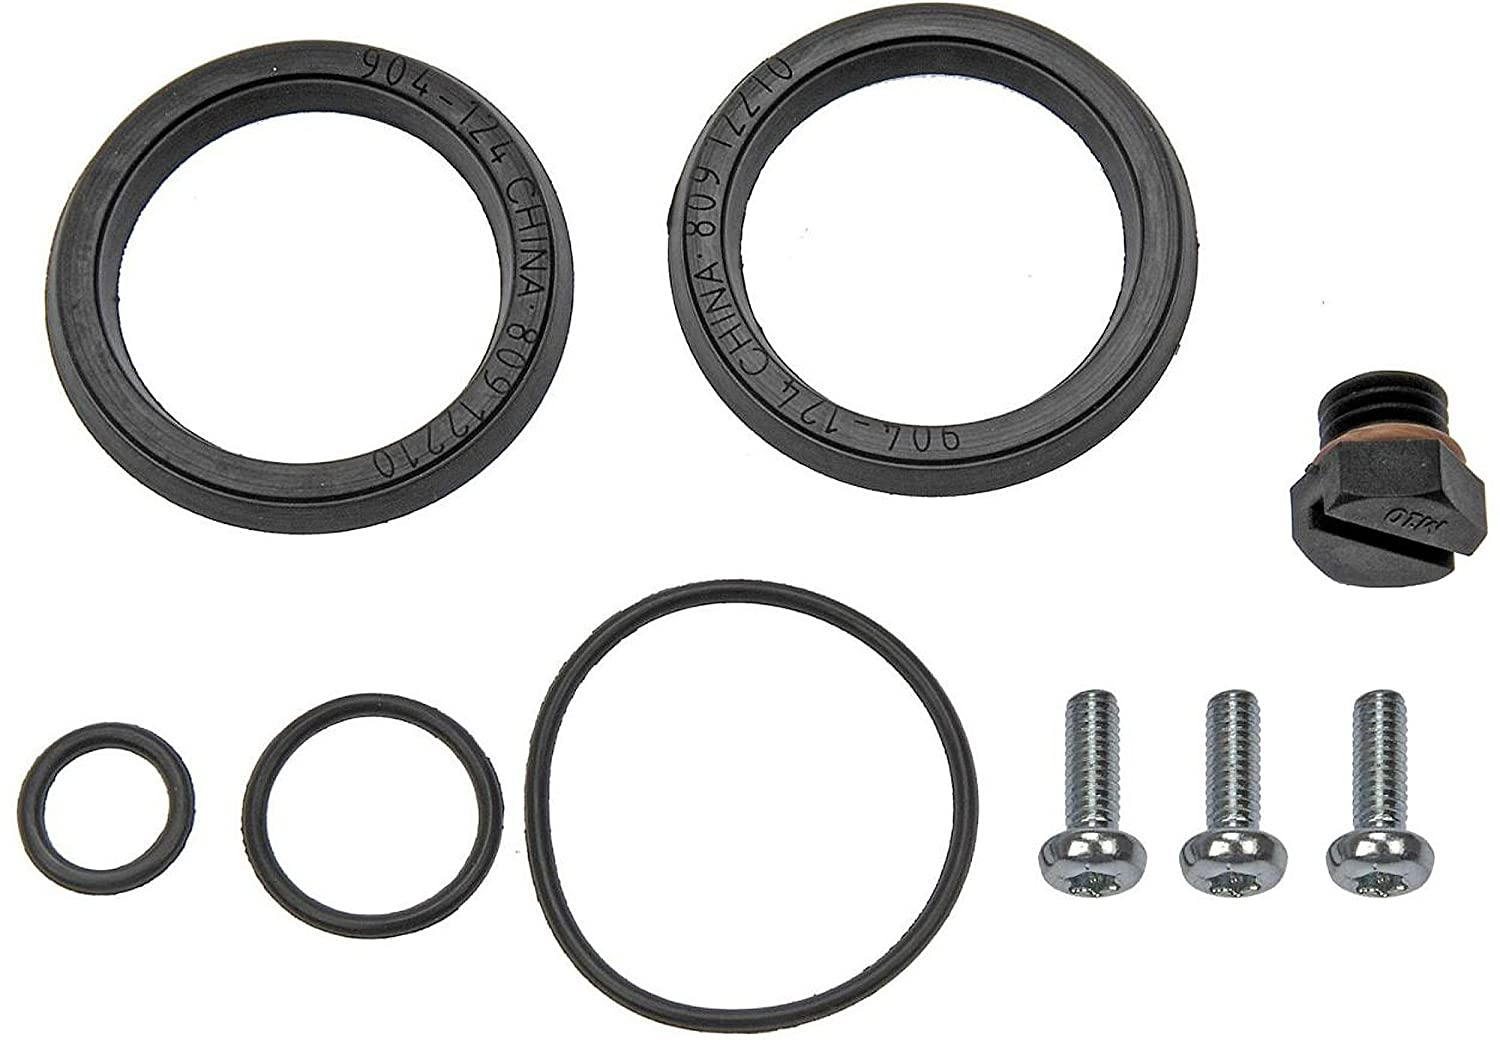 015235 fuel filter primer housing bleed screw o-ring re-seal kit fits  2001-2012 chevrolet gmc 6 6l duramax diesel engine (replaces 12642623):  automotive